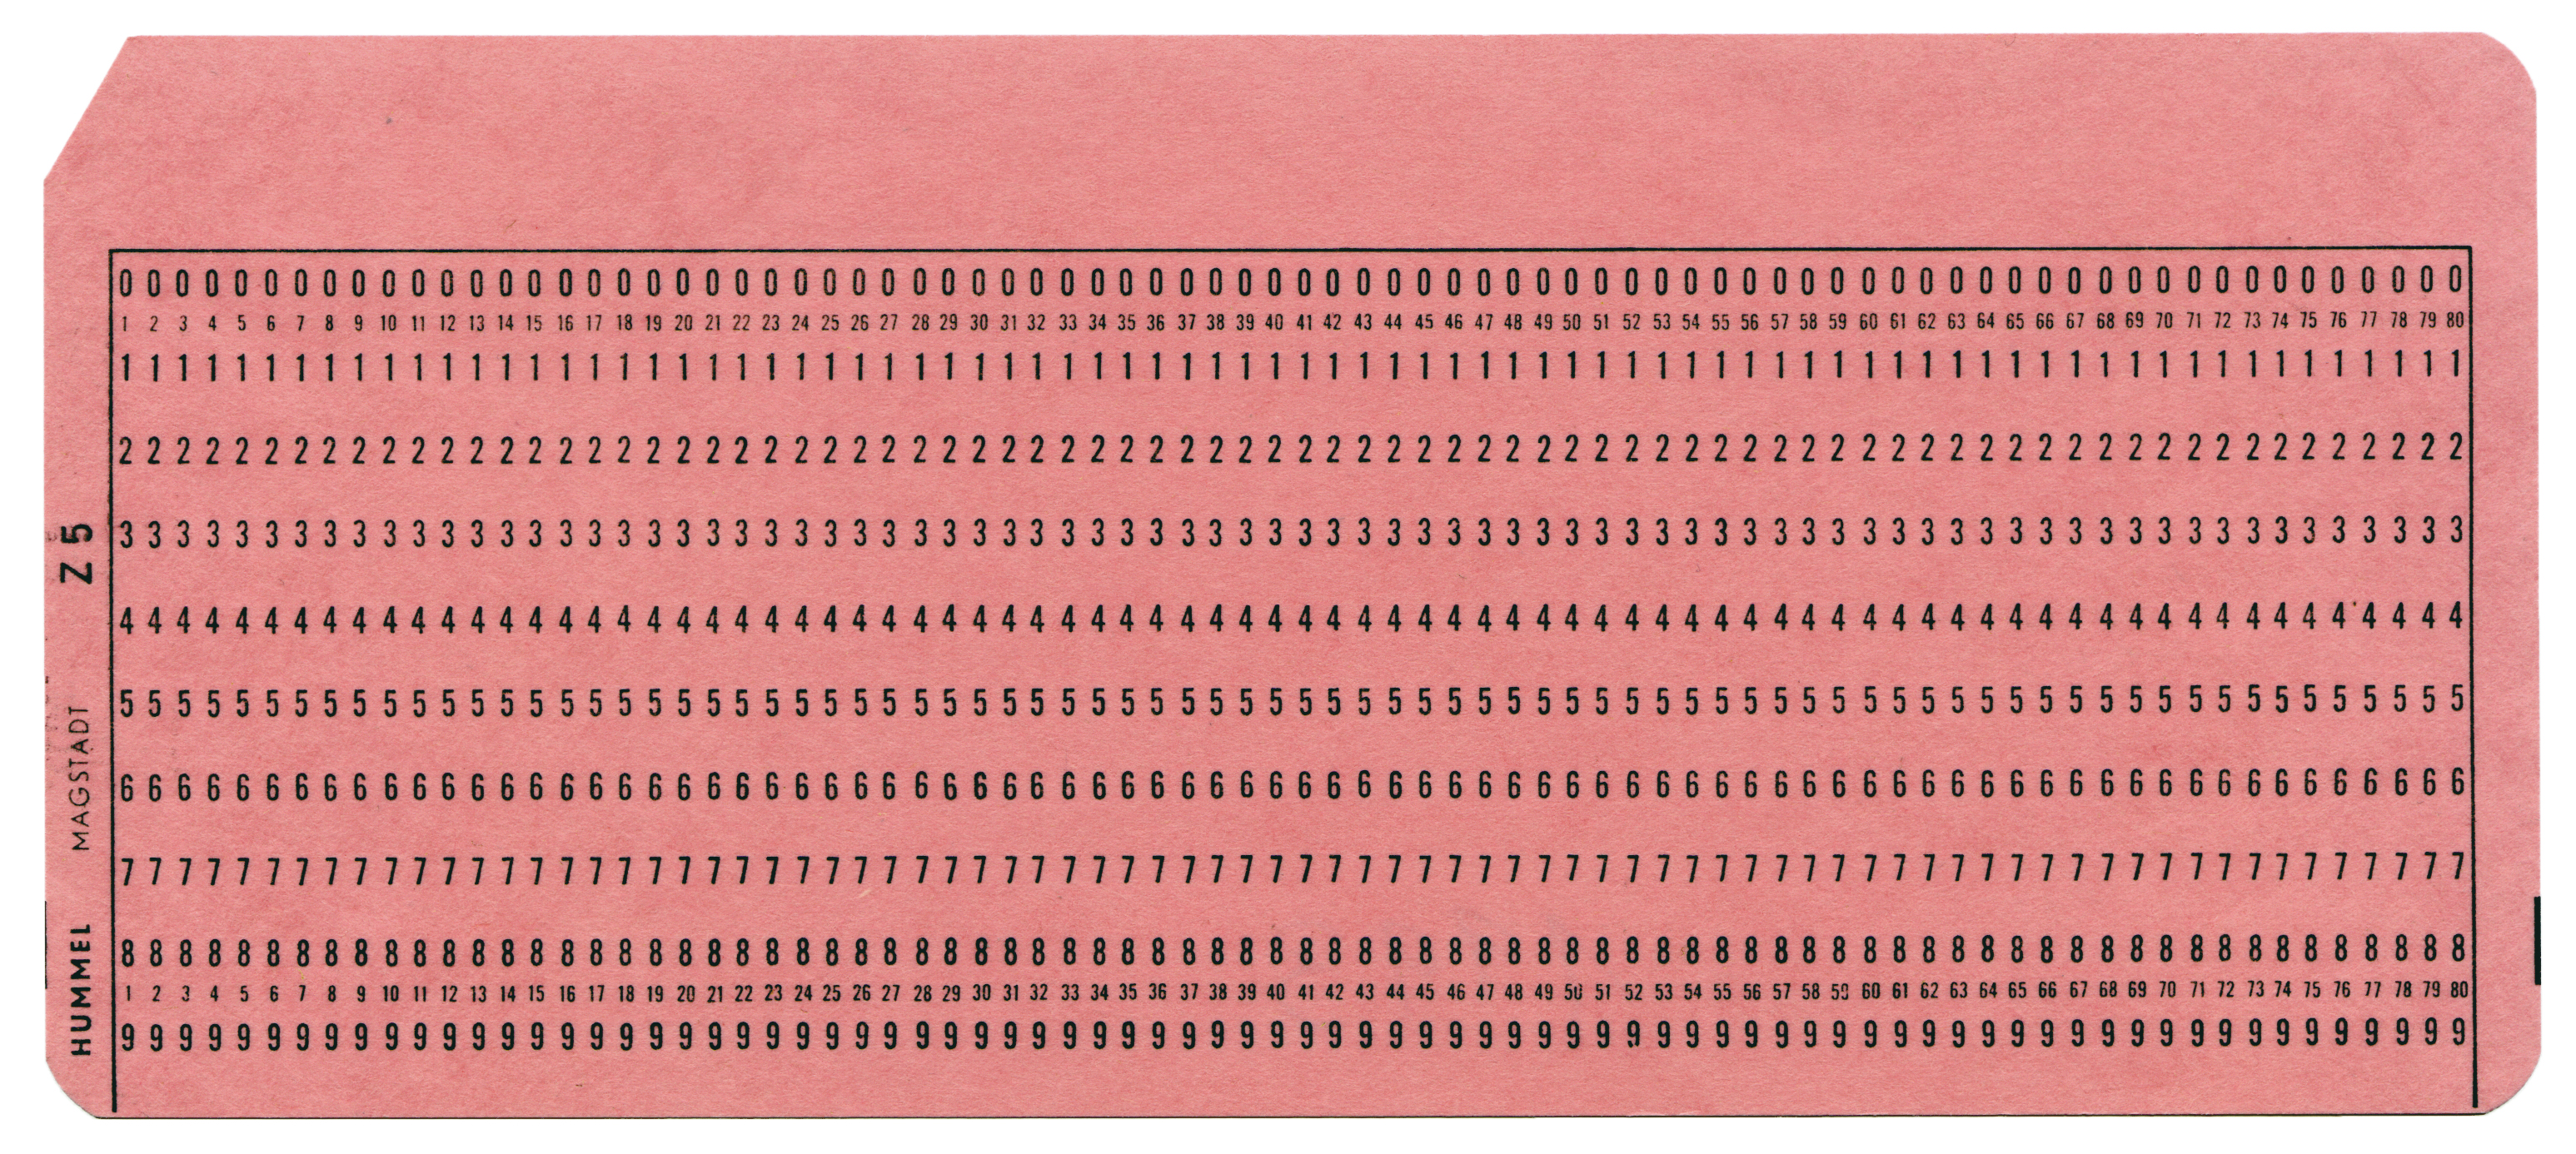 File Punch Card 80 Columns 1 Jpg Wikimedia Commons